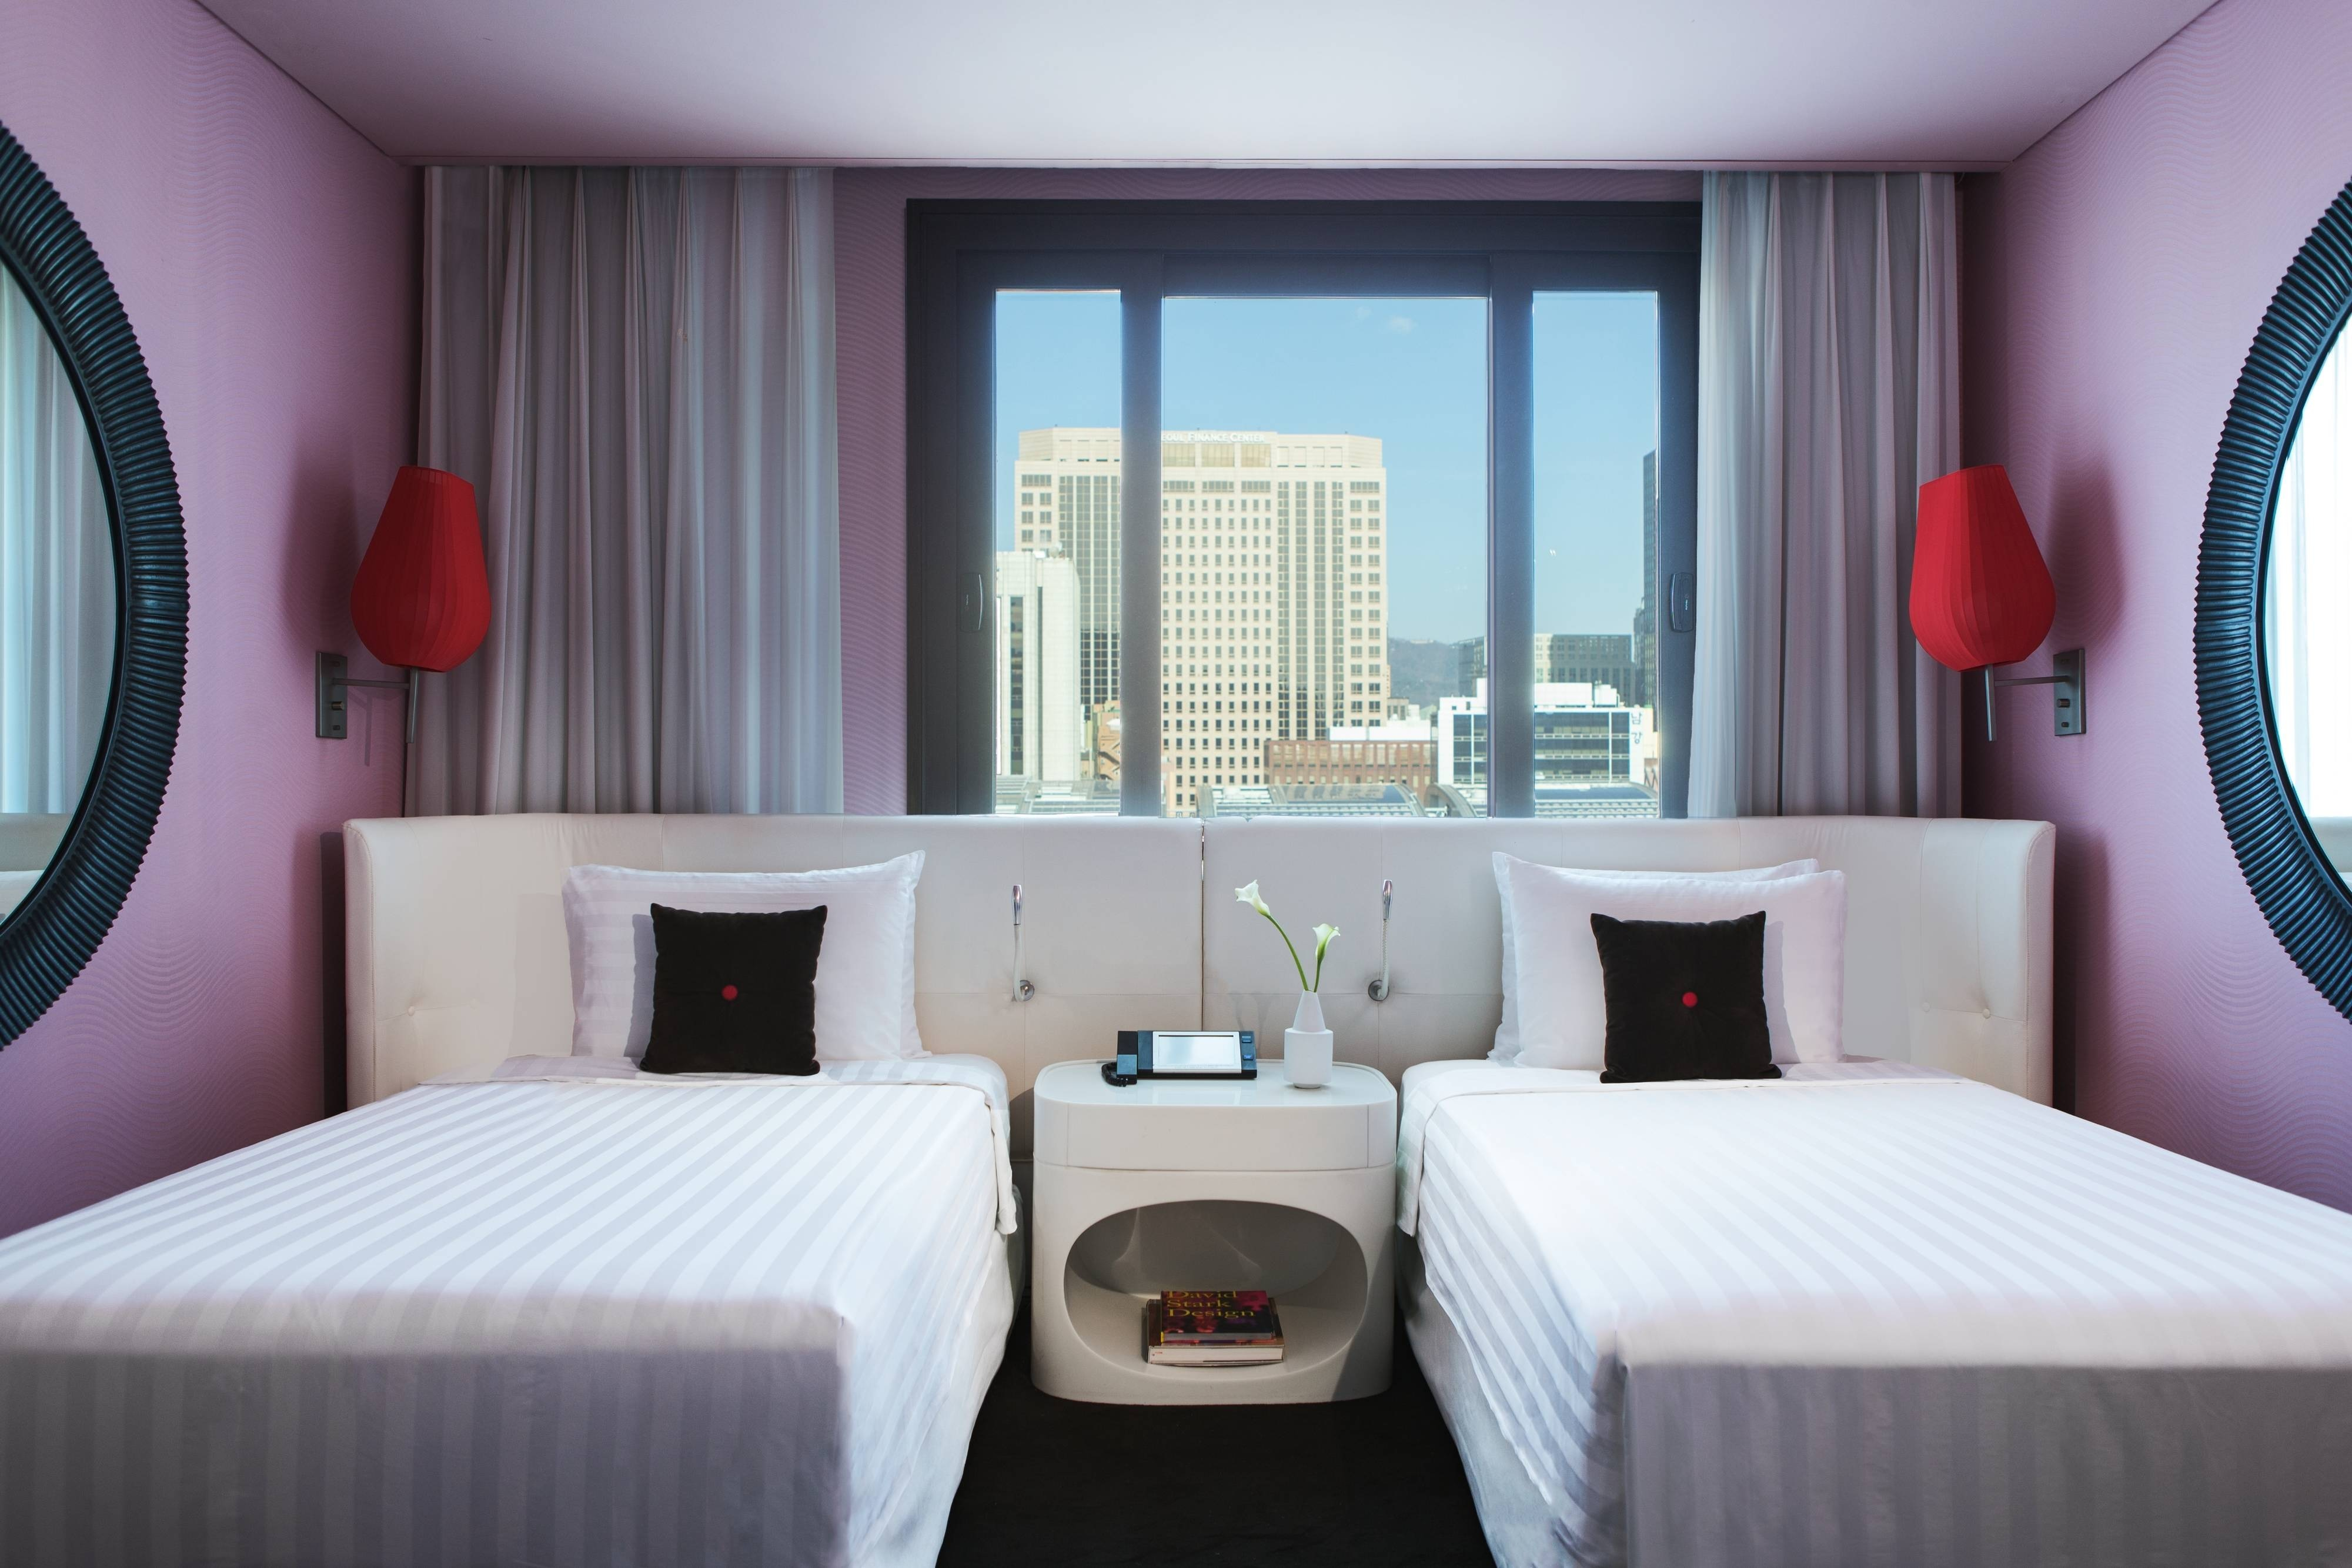 Deluxe Twin, Twin beds, Deluxe, City View